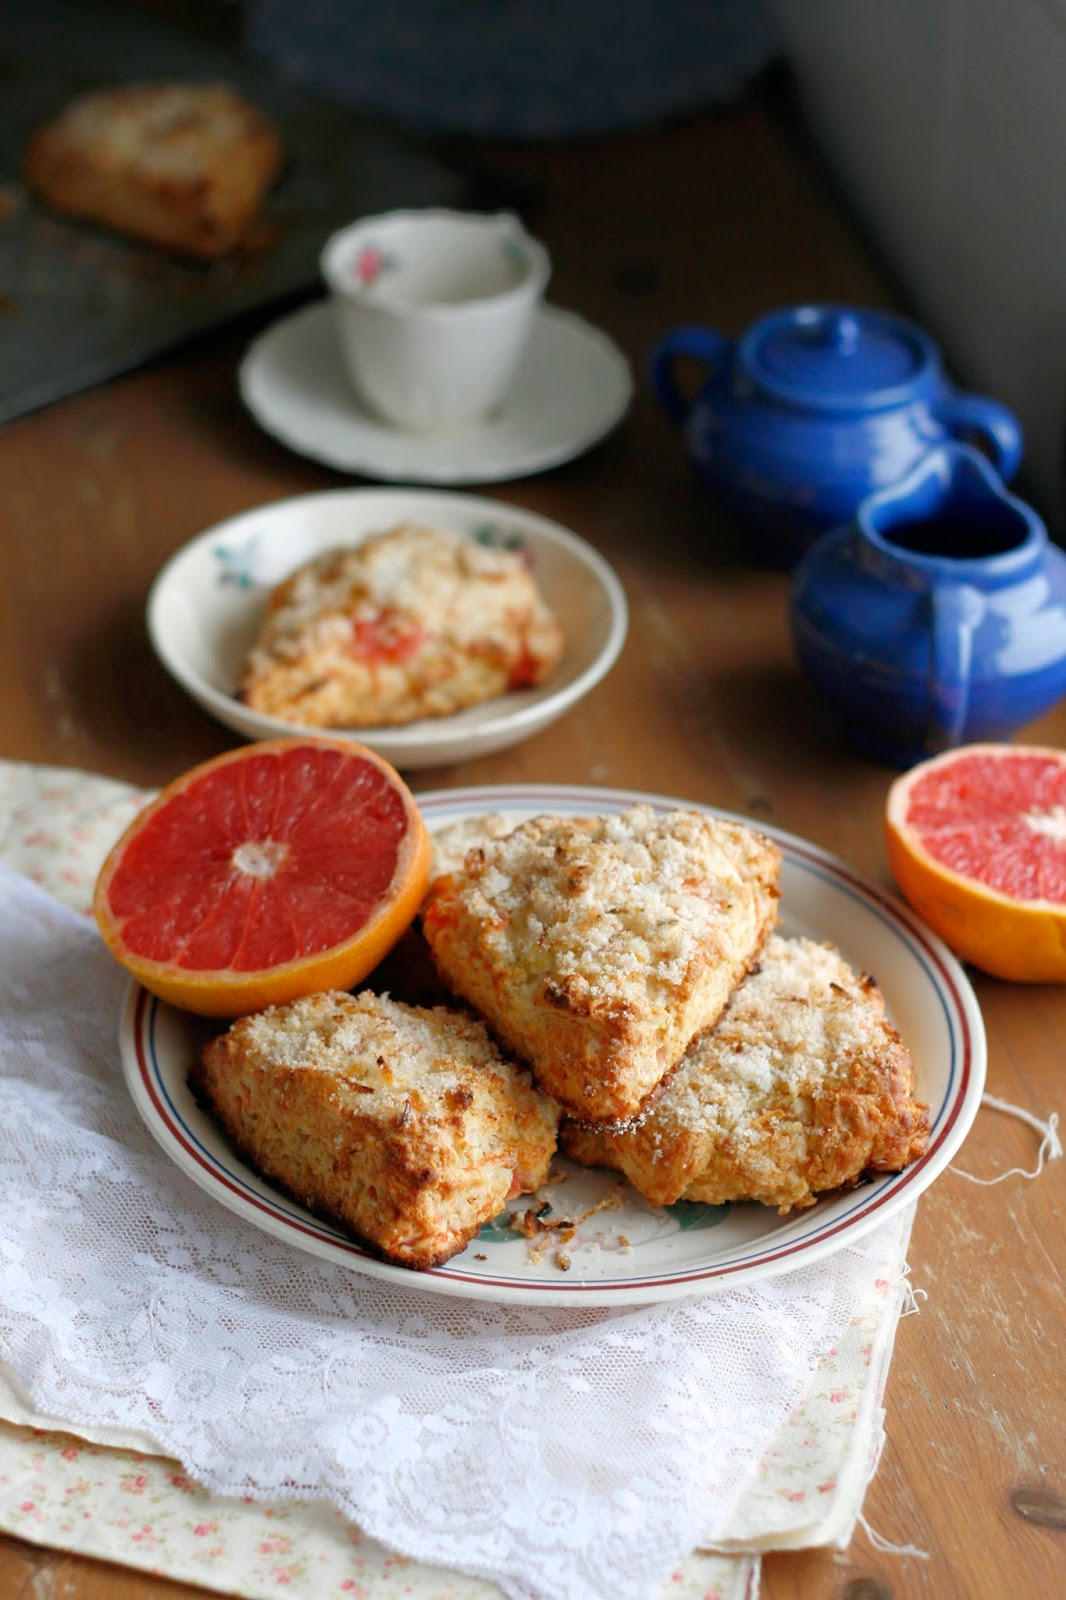 Indigo Scones: Grapefruit Honey Yogurt Scones